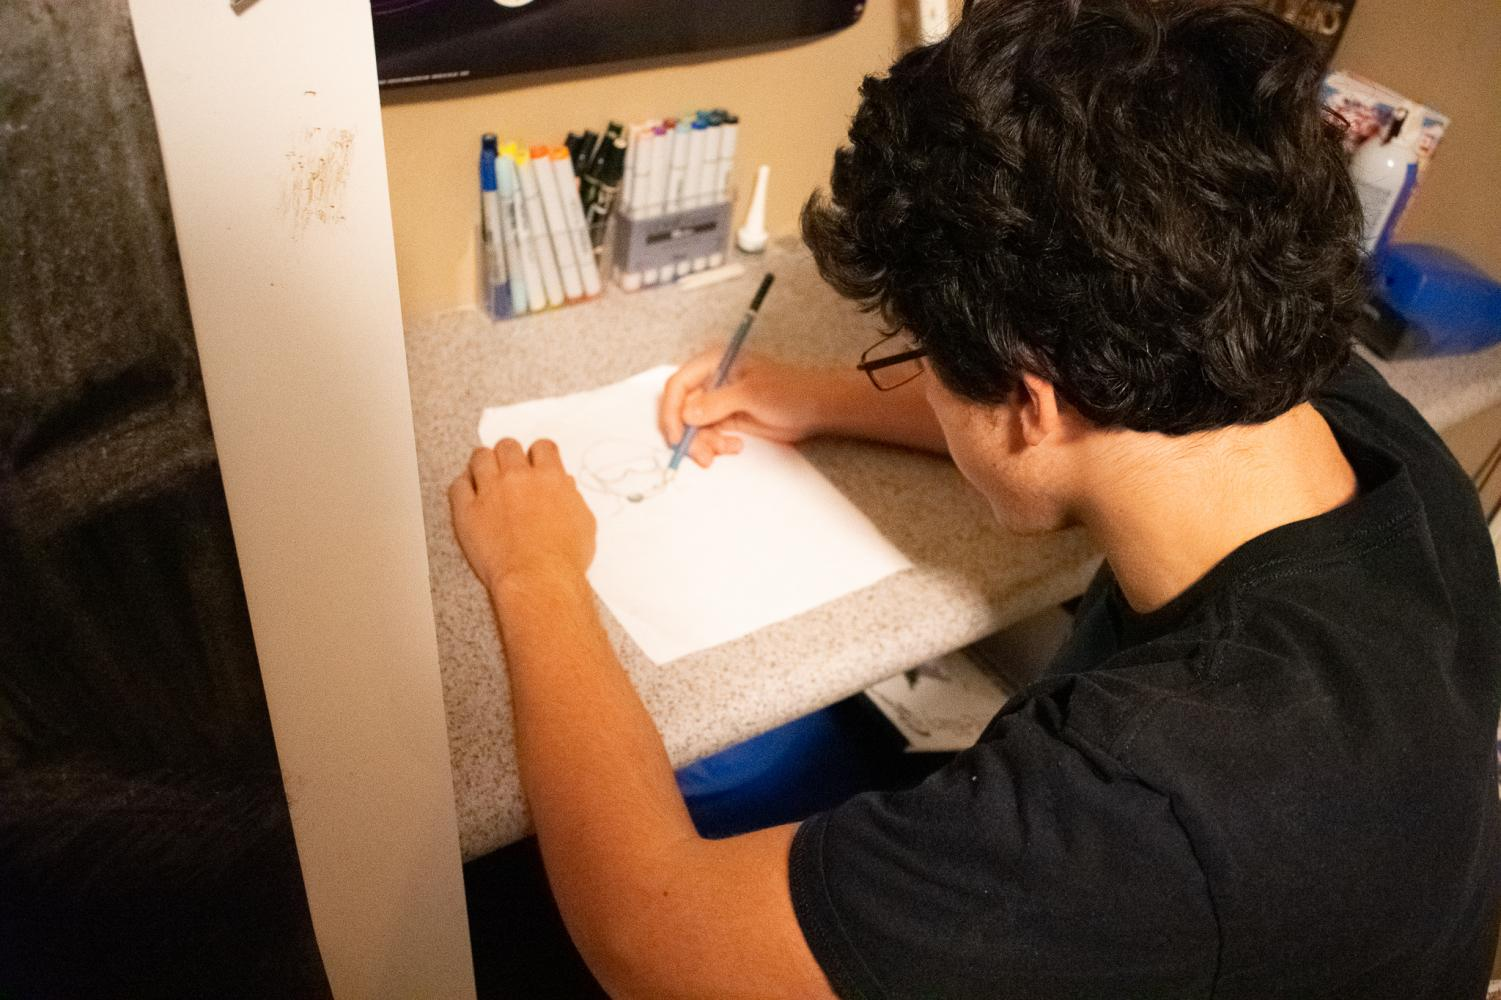 Brandon Komesar working on his latest art project, photographed by Sahba Ostovar, Dec. 9, 2018